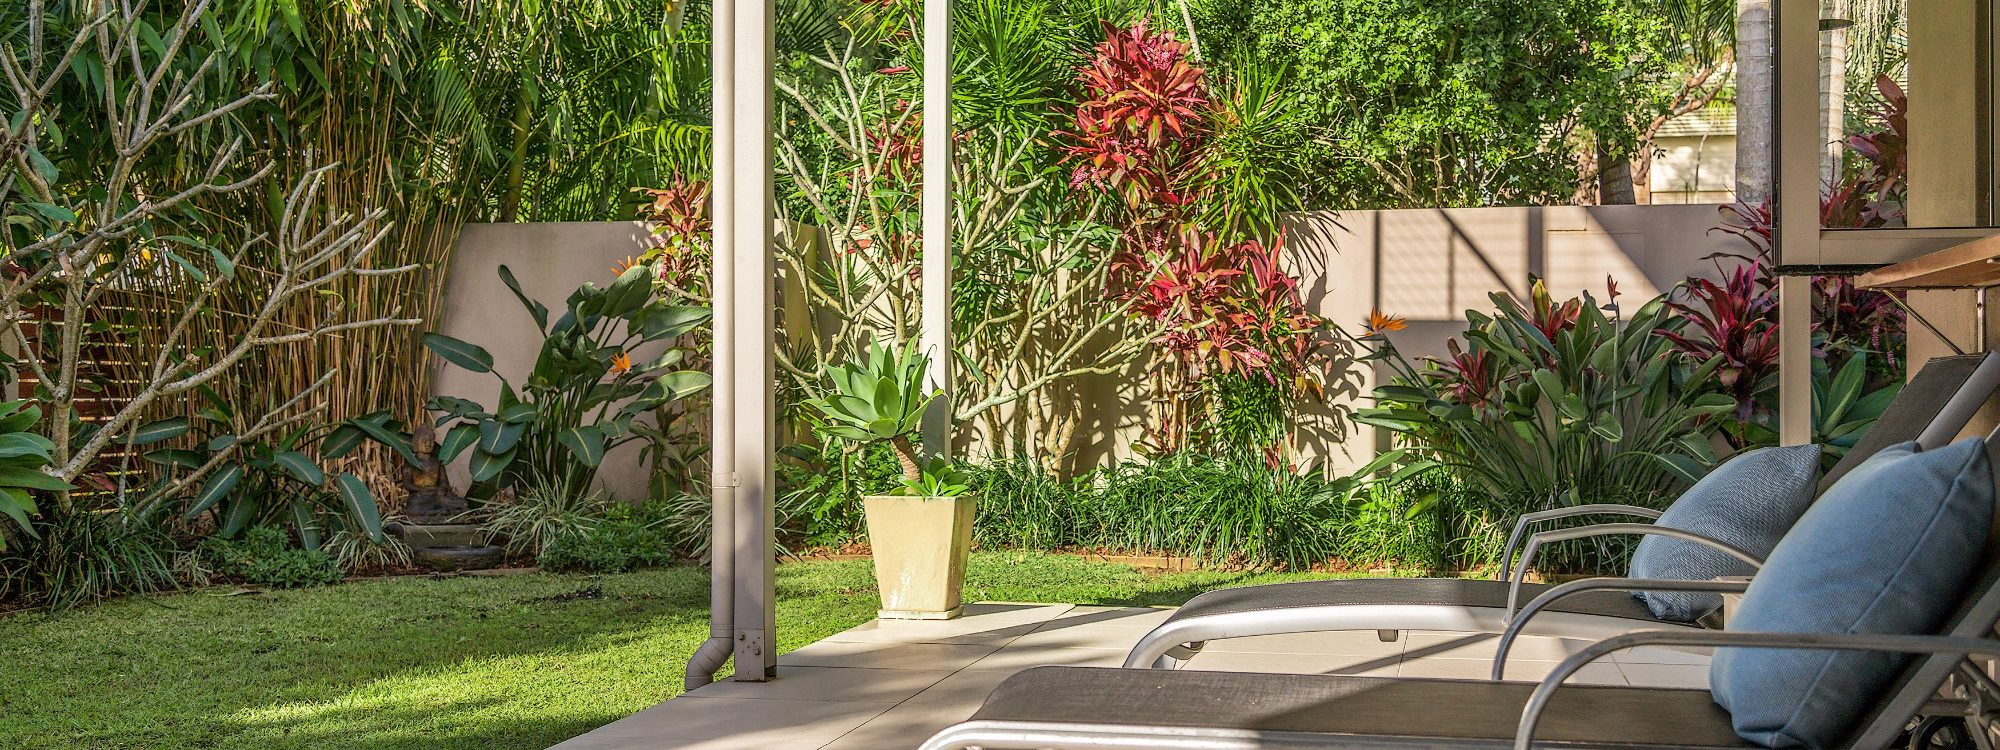 Byron Beach Style - Downstairs Deck with Sunloungers